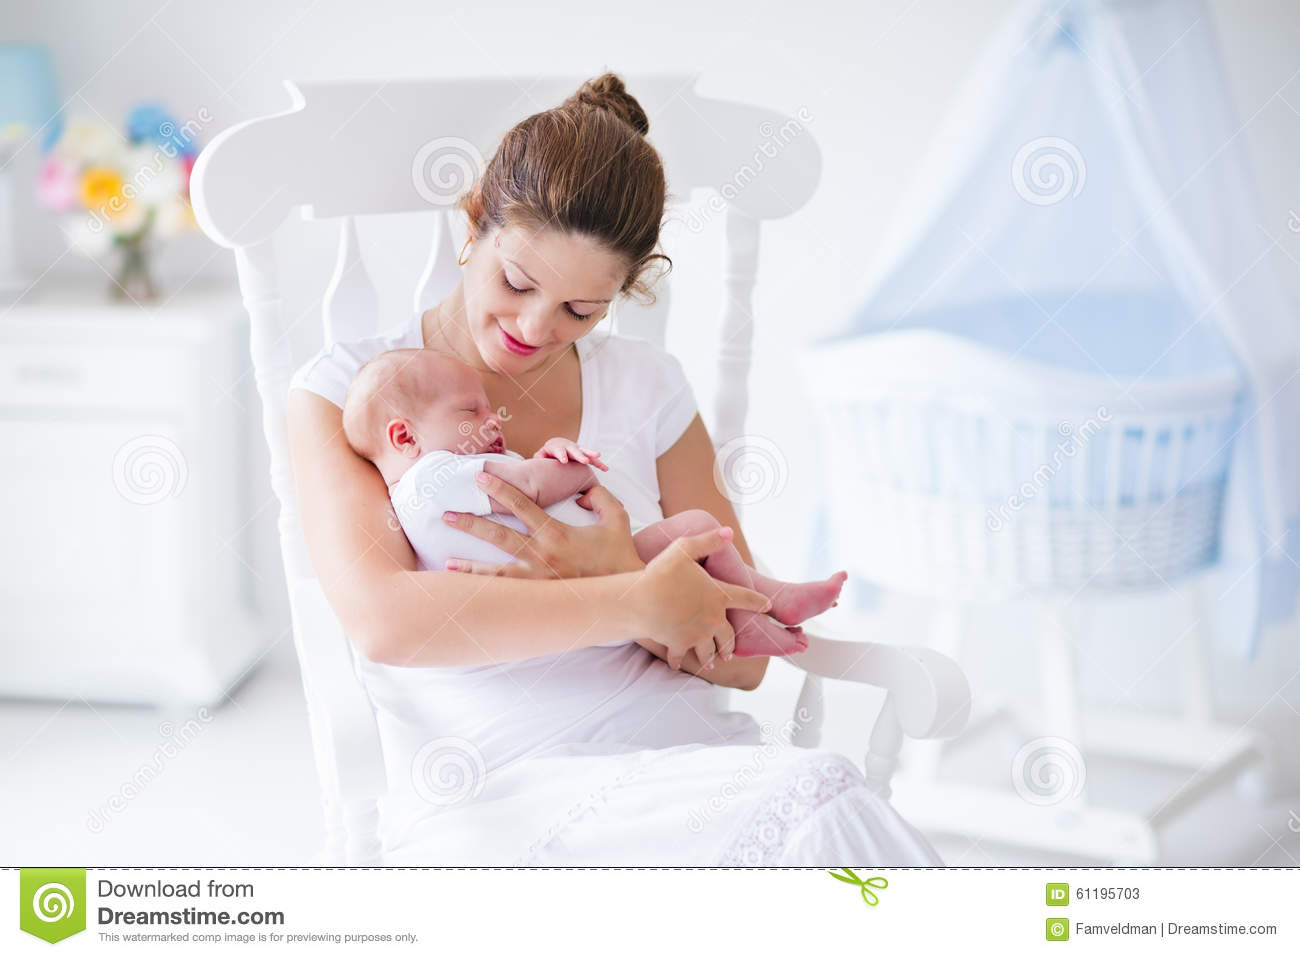 rocking nursing chair plastic clear covers mother and newborn baby in white nursery stock photo - image: 61195703